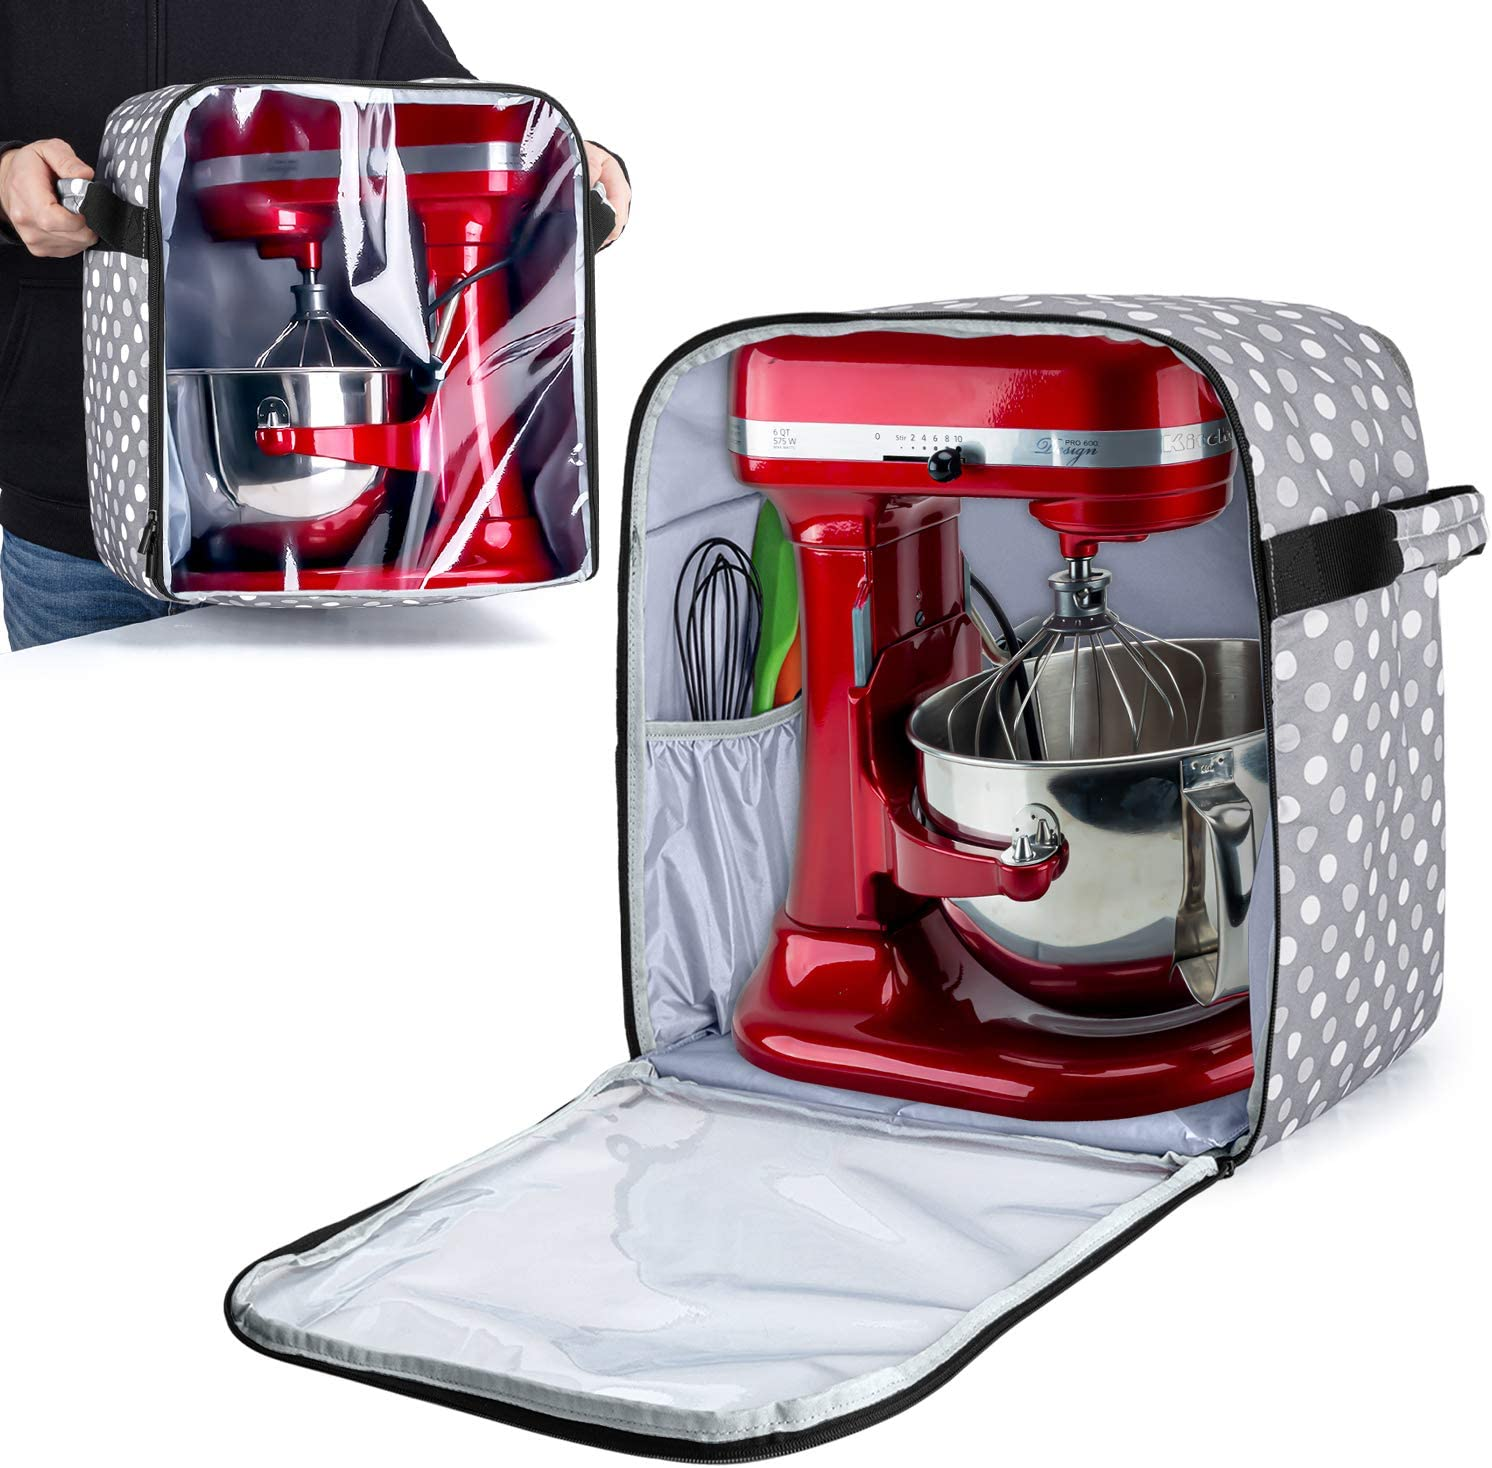 Luxja Dust Cover for 6-8 Quart KitchenAid Mixers (with a Bottom Padding Pad) and 4 Slice Toaster Cover Bundle